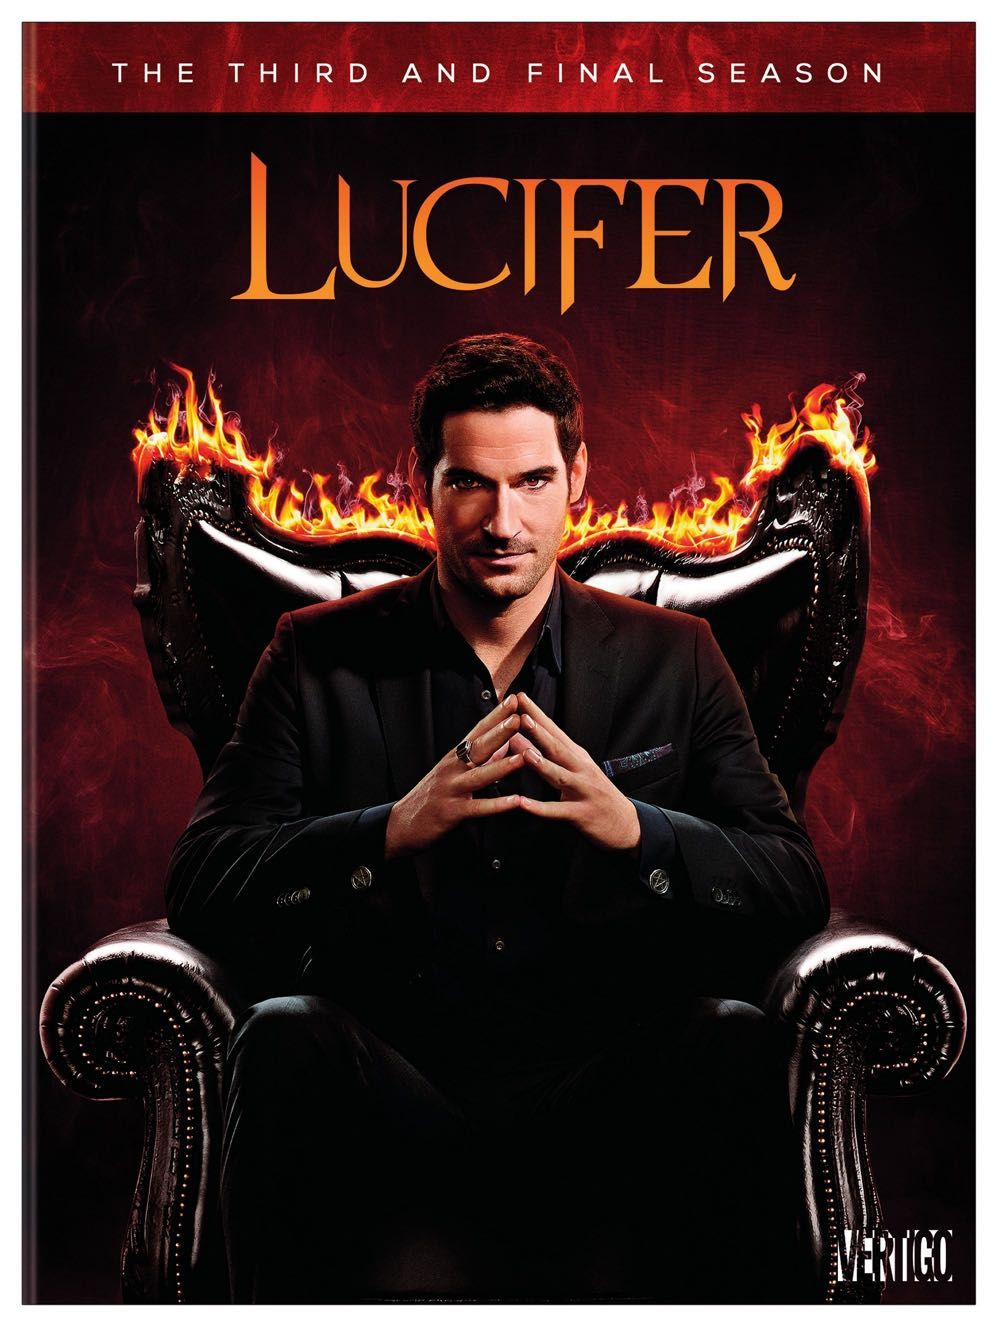 Lucifer Season 3 Blu Ray And Dvd Release Details Lucifer